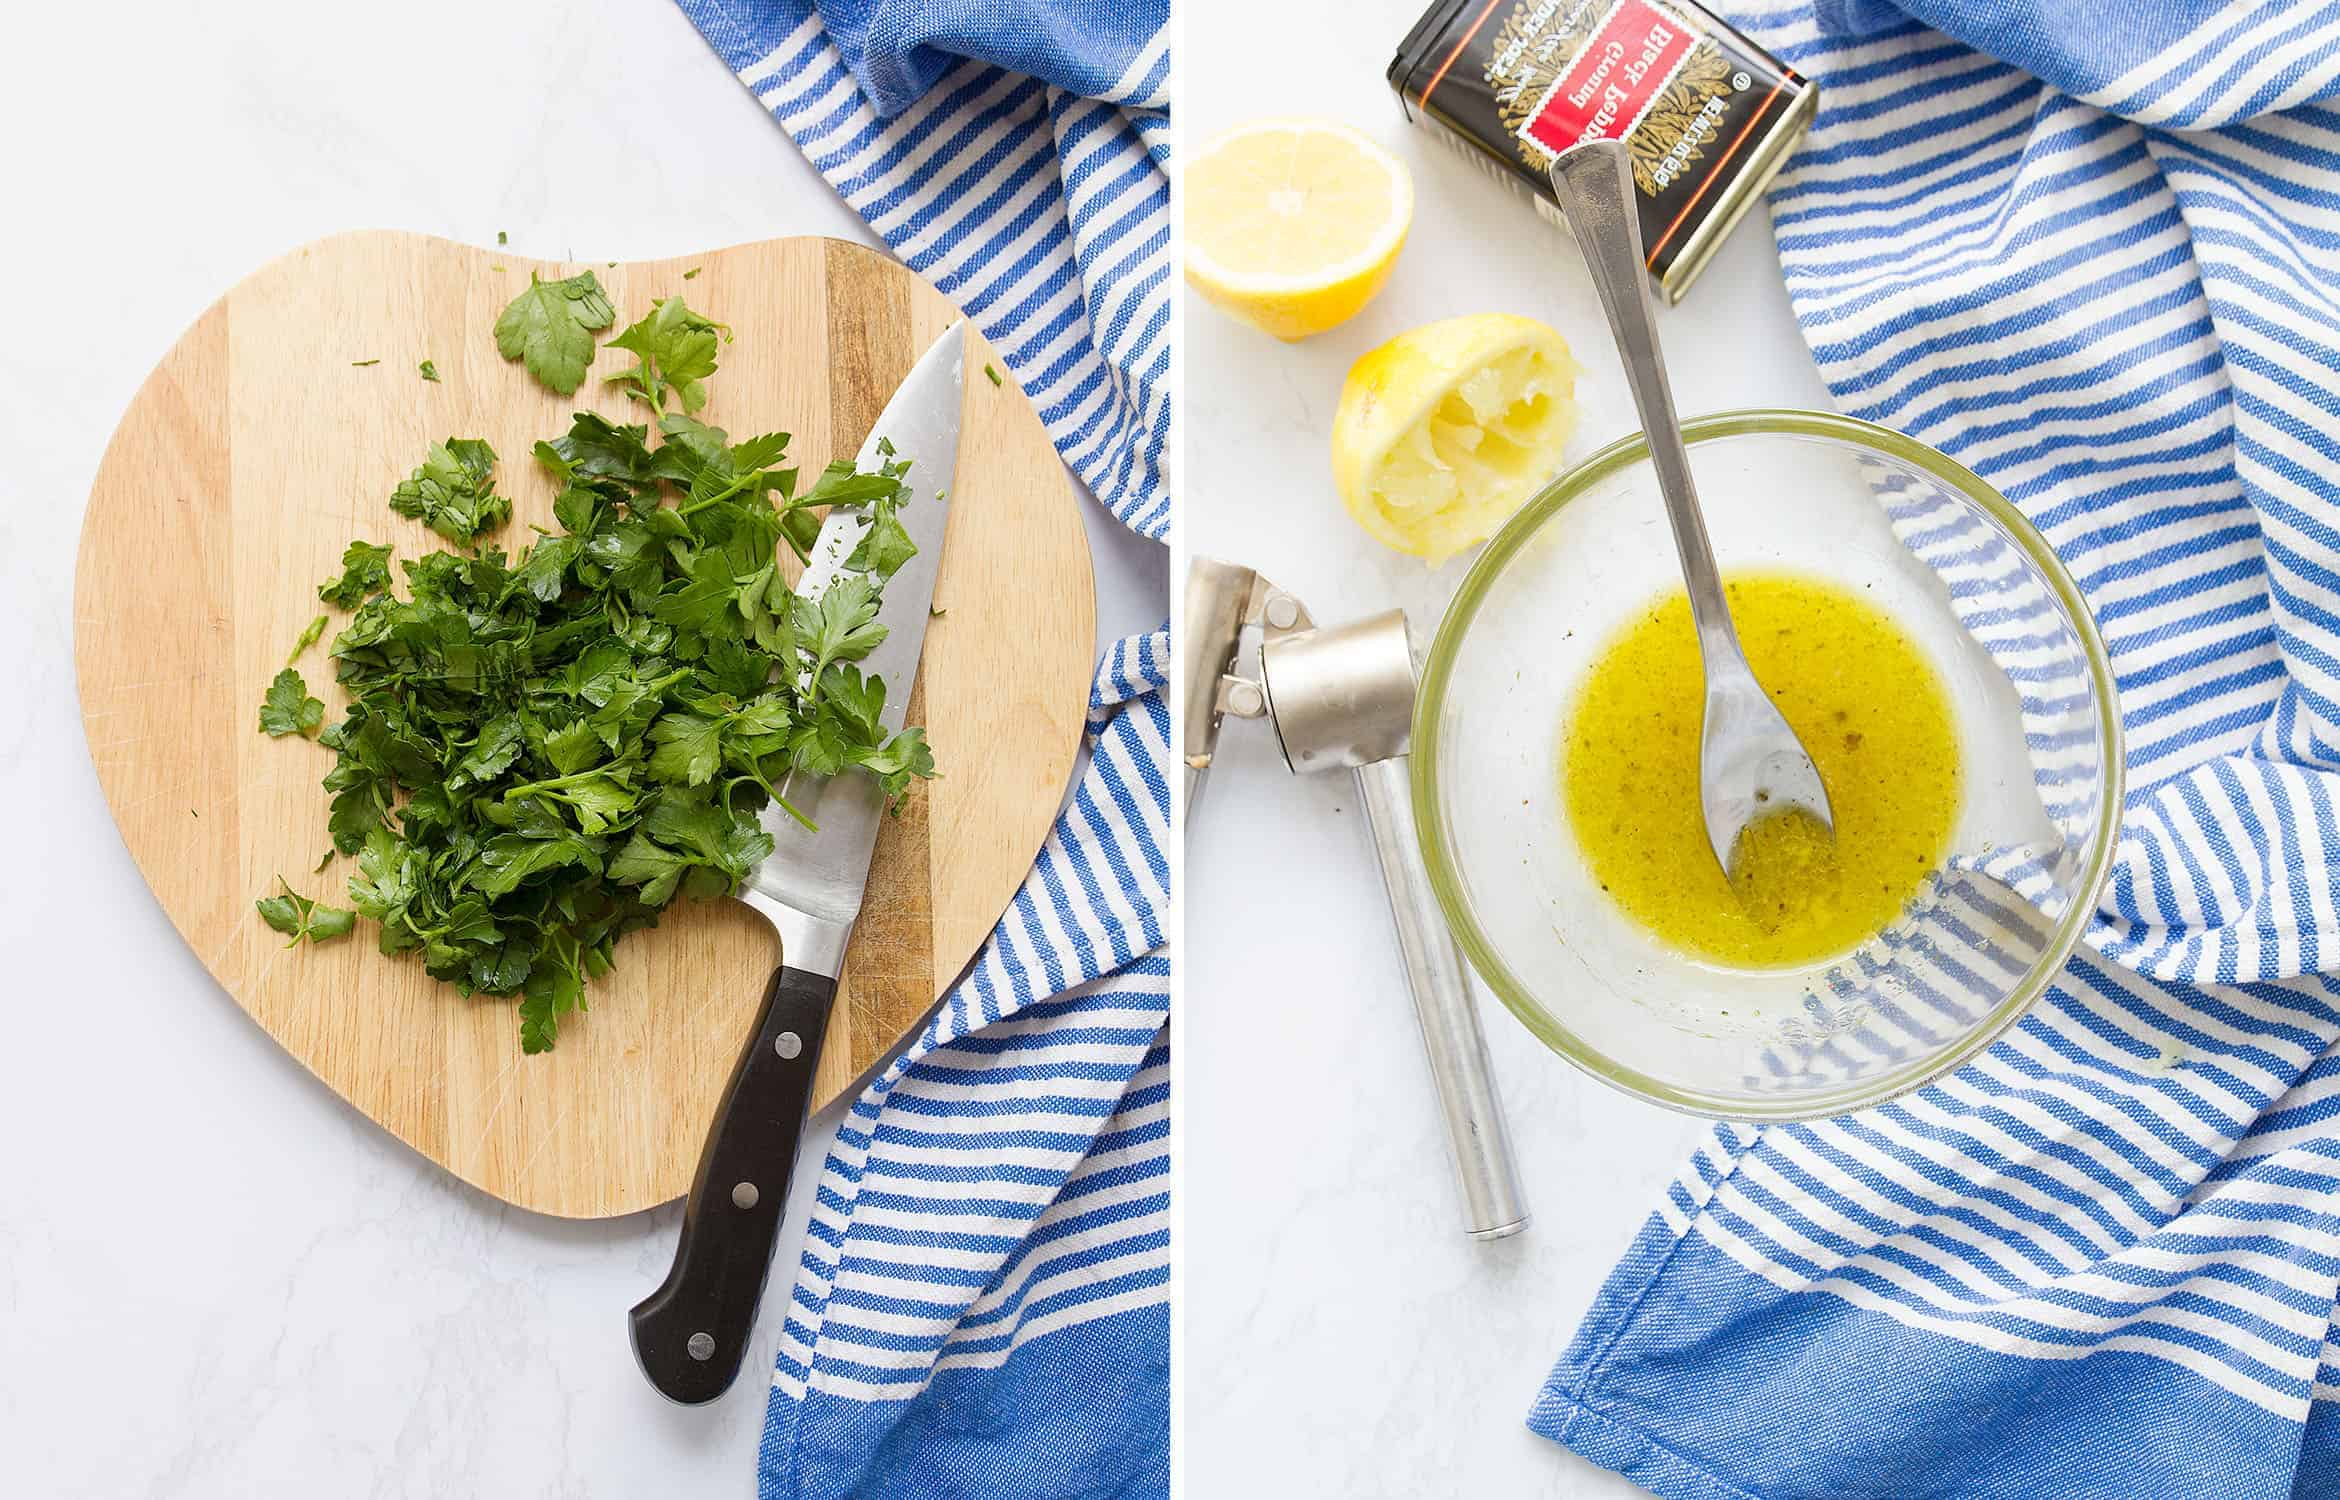 Fresh parsley on a chopping board and lemon dressing in a glass bowl.